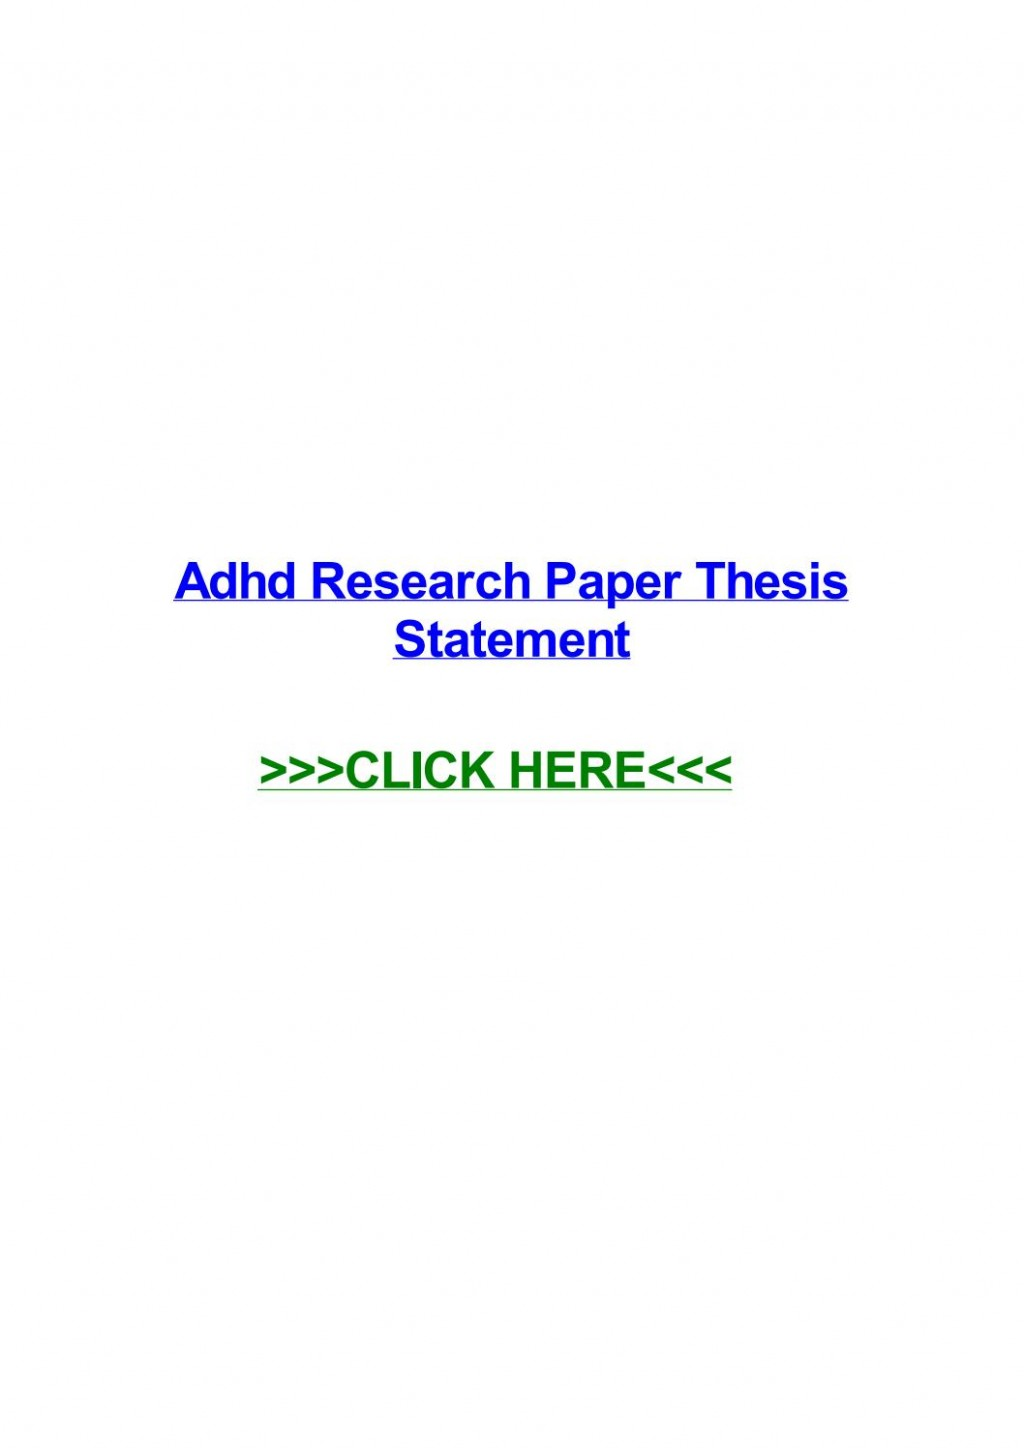 013 Adhd Research Paper Thesis Statement Page 1 Fantastic Large